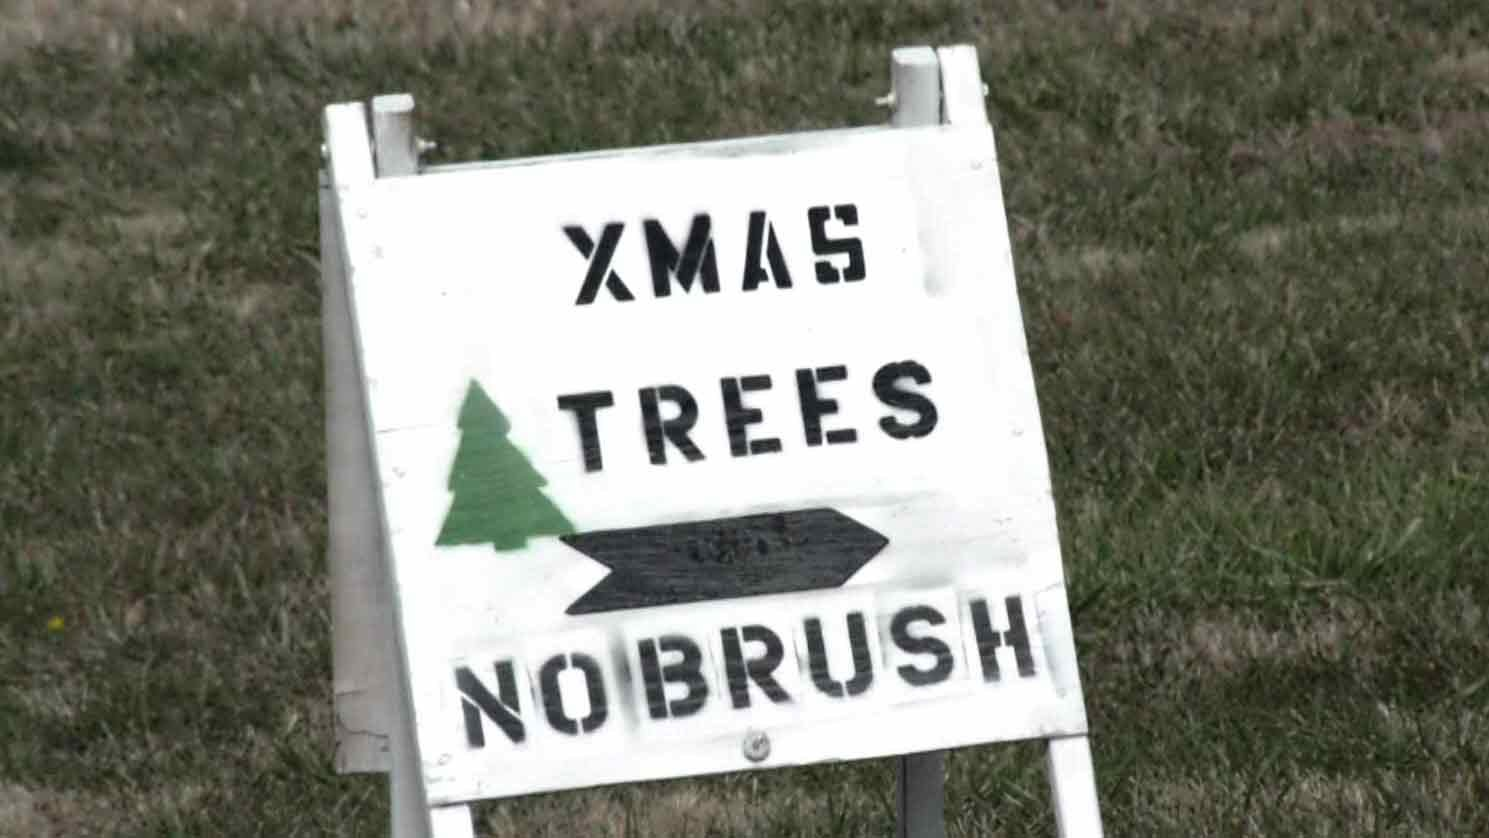 'No Brush' sign outside Darden Towe Park.